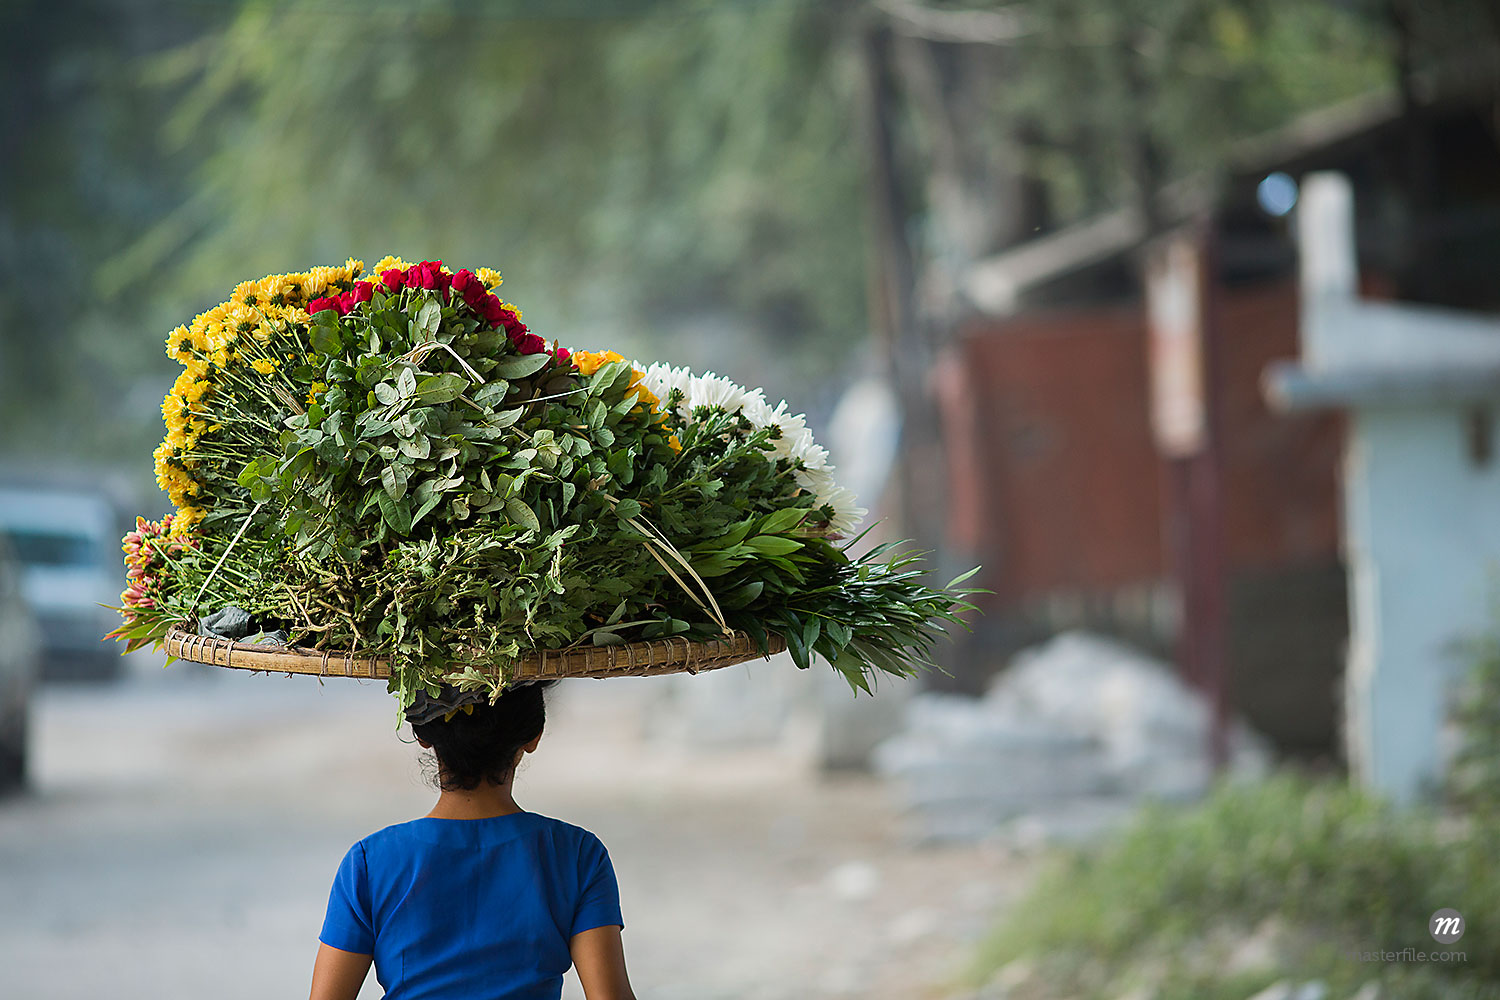 Woman carrying flowers on head to market, Mandalay, Myanmar  © Albert Normandin